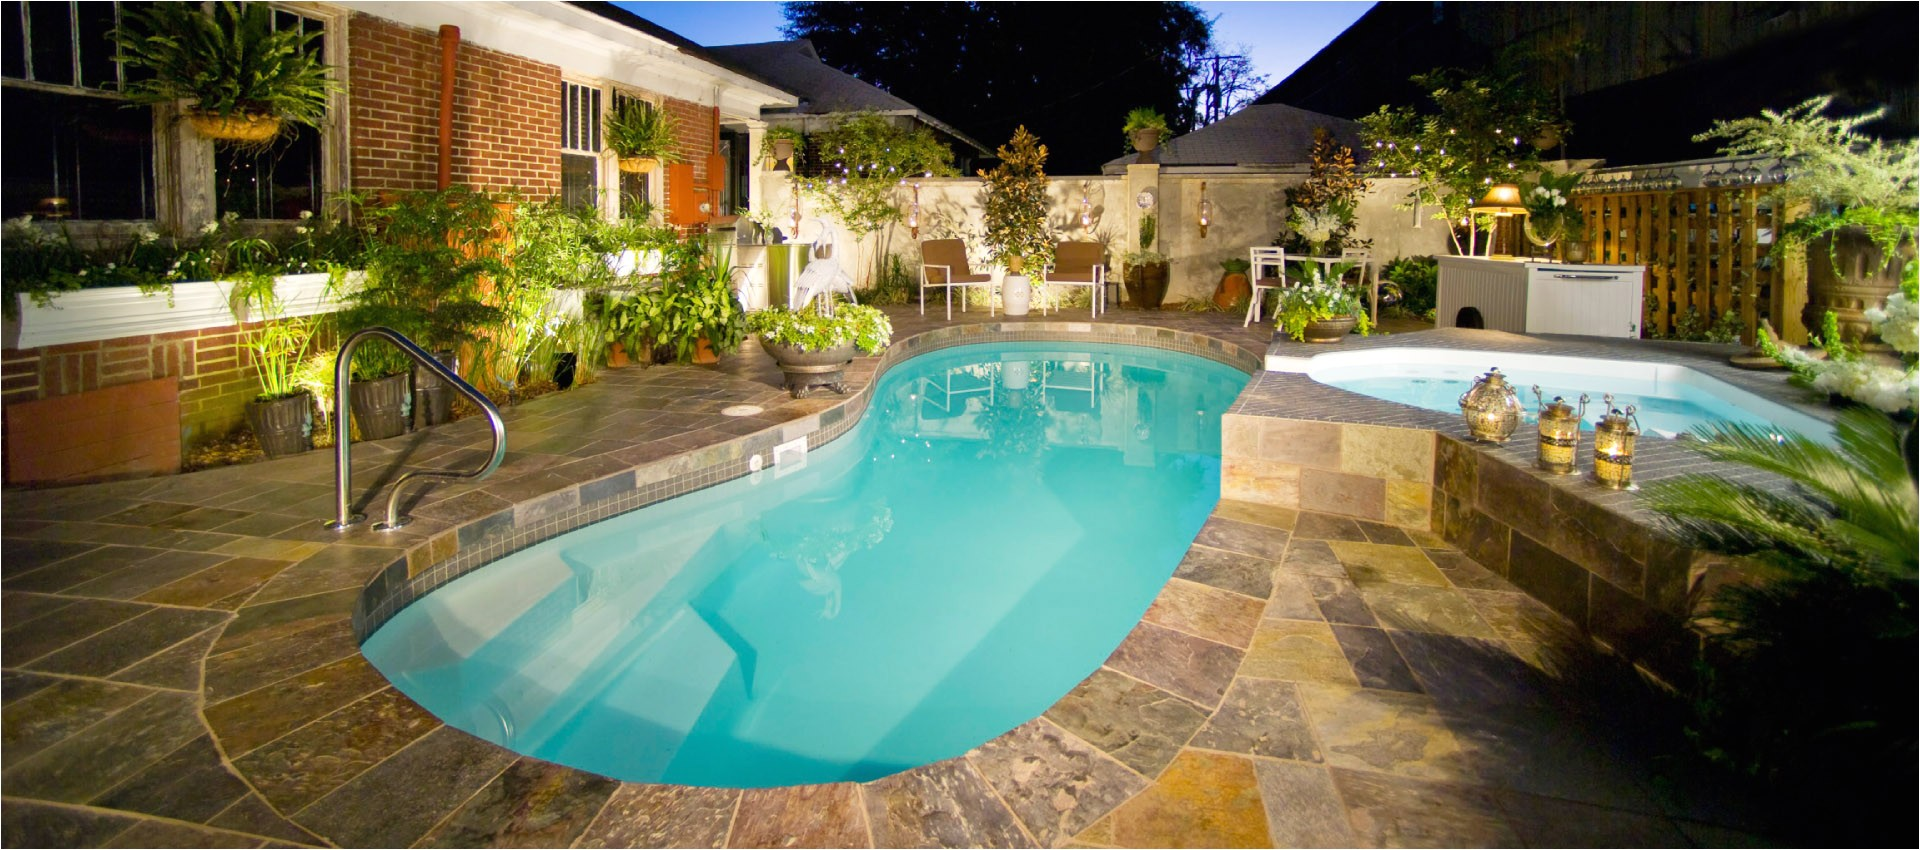 Fiberglass Pools Columbia Sc Advantages Of Installing Fiberglass Swimming Pools